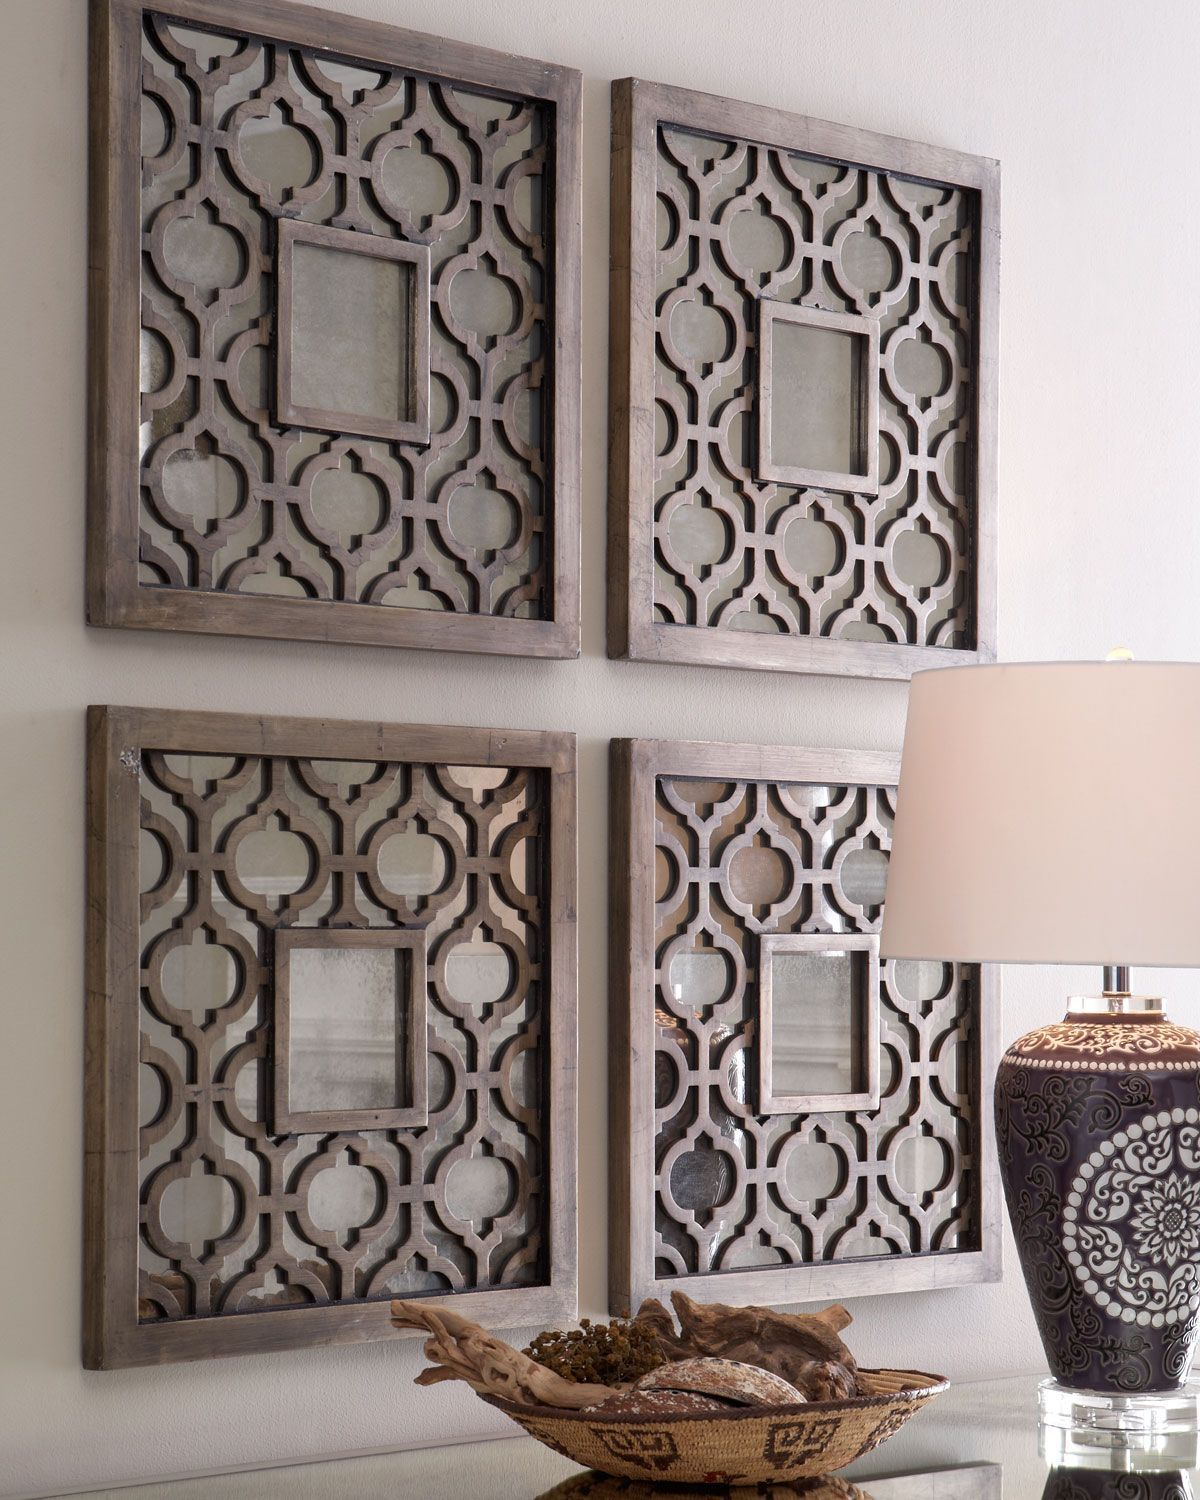 Wood Lattice Wall Art Awesome Wall Decor With Uttermost Sorbolo Antiqued Mirrors Photo Wood Lattice Wall Art Awesome Wall De Asian Home Decor Decor Wall Decor